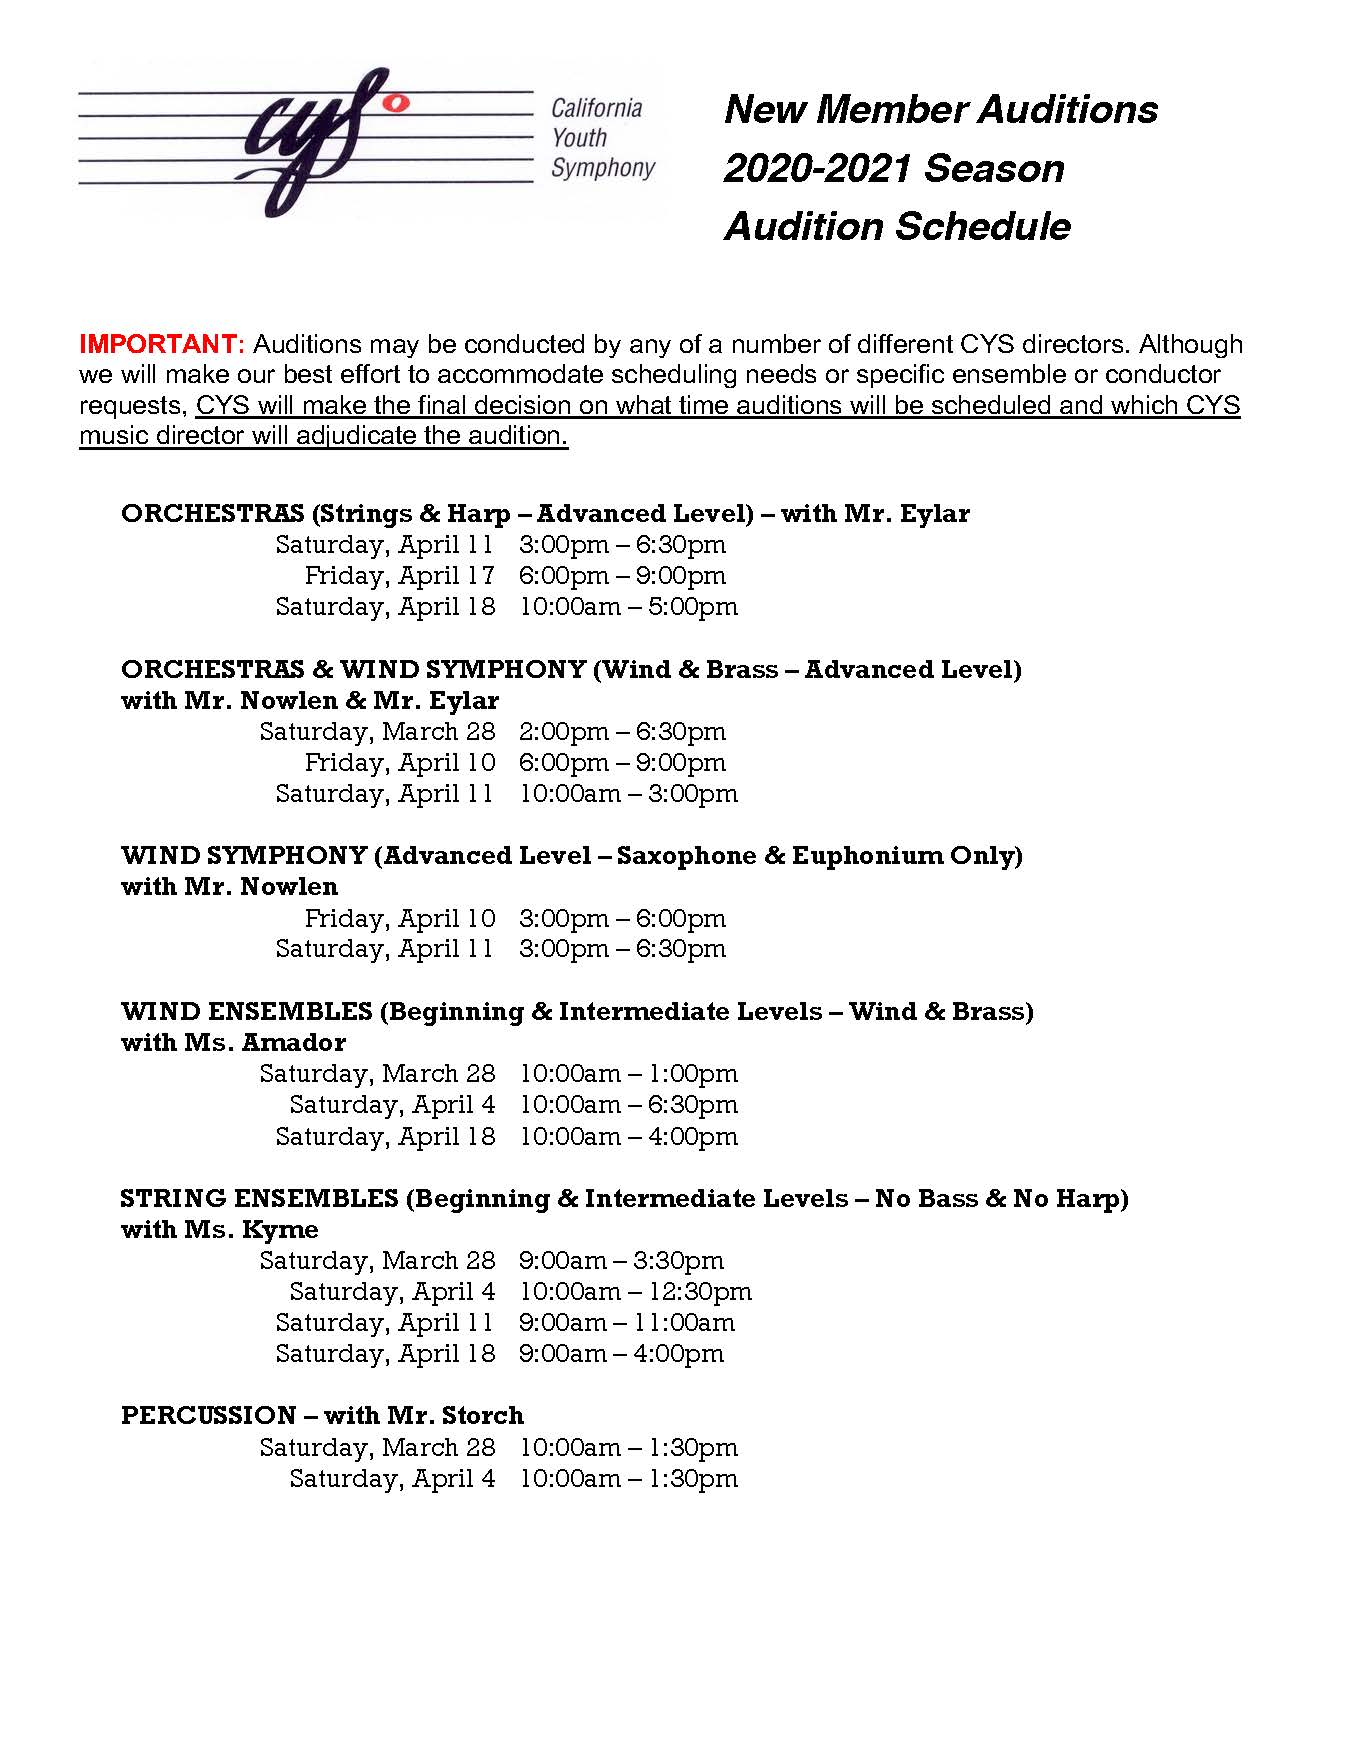 2020 New Member Audition Schedule